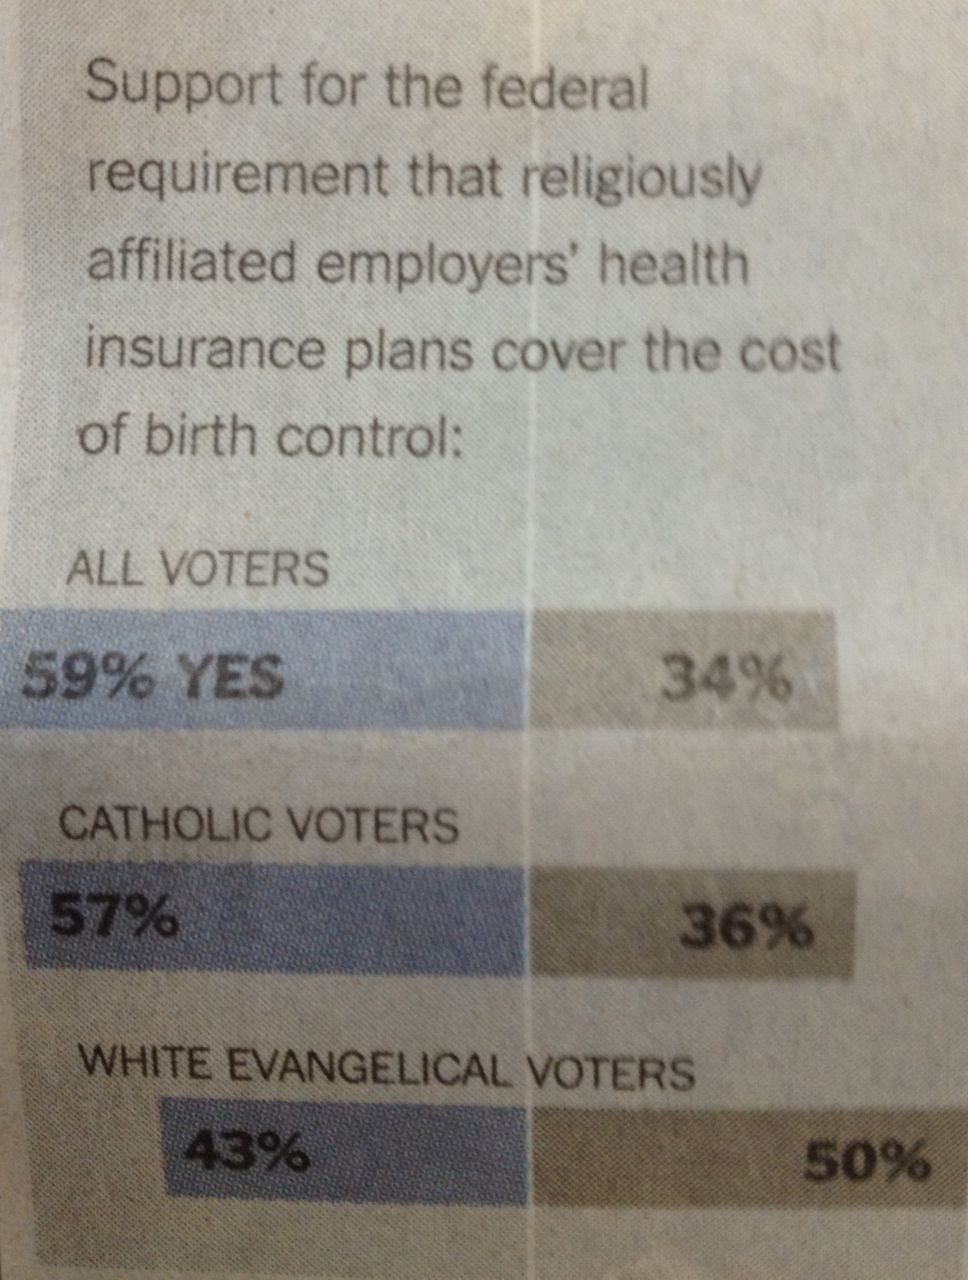 polling NYT Poll: Catholic Bishops Badly Overreach On Birth Control Issue